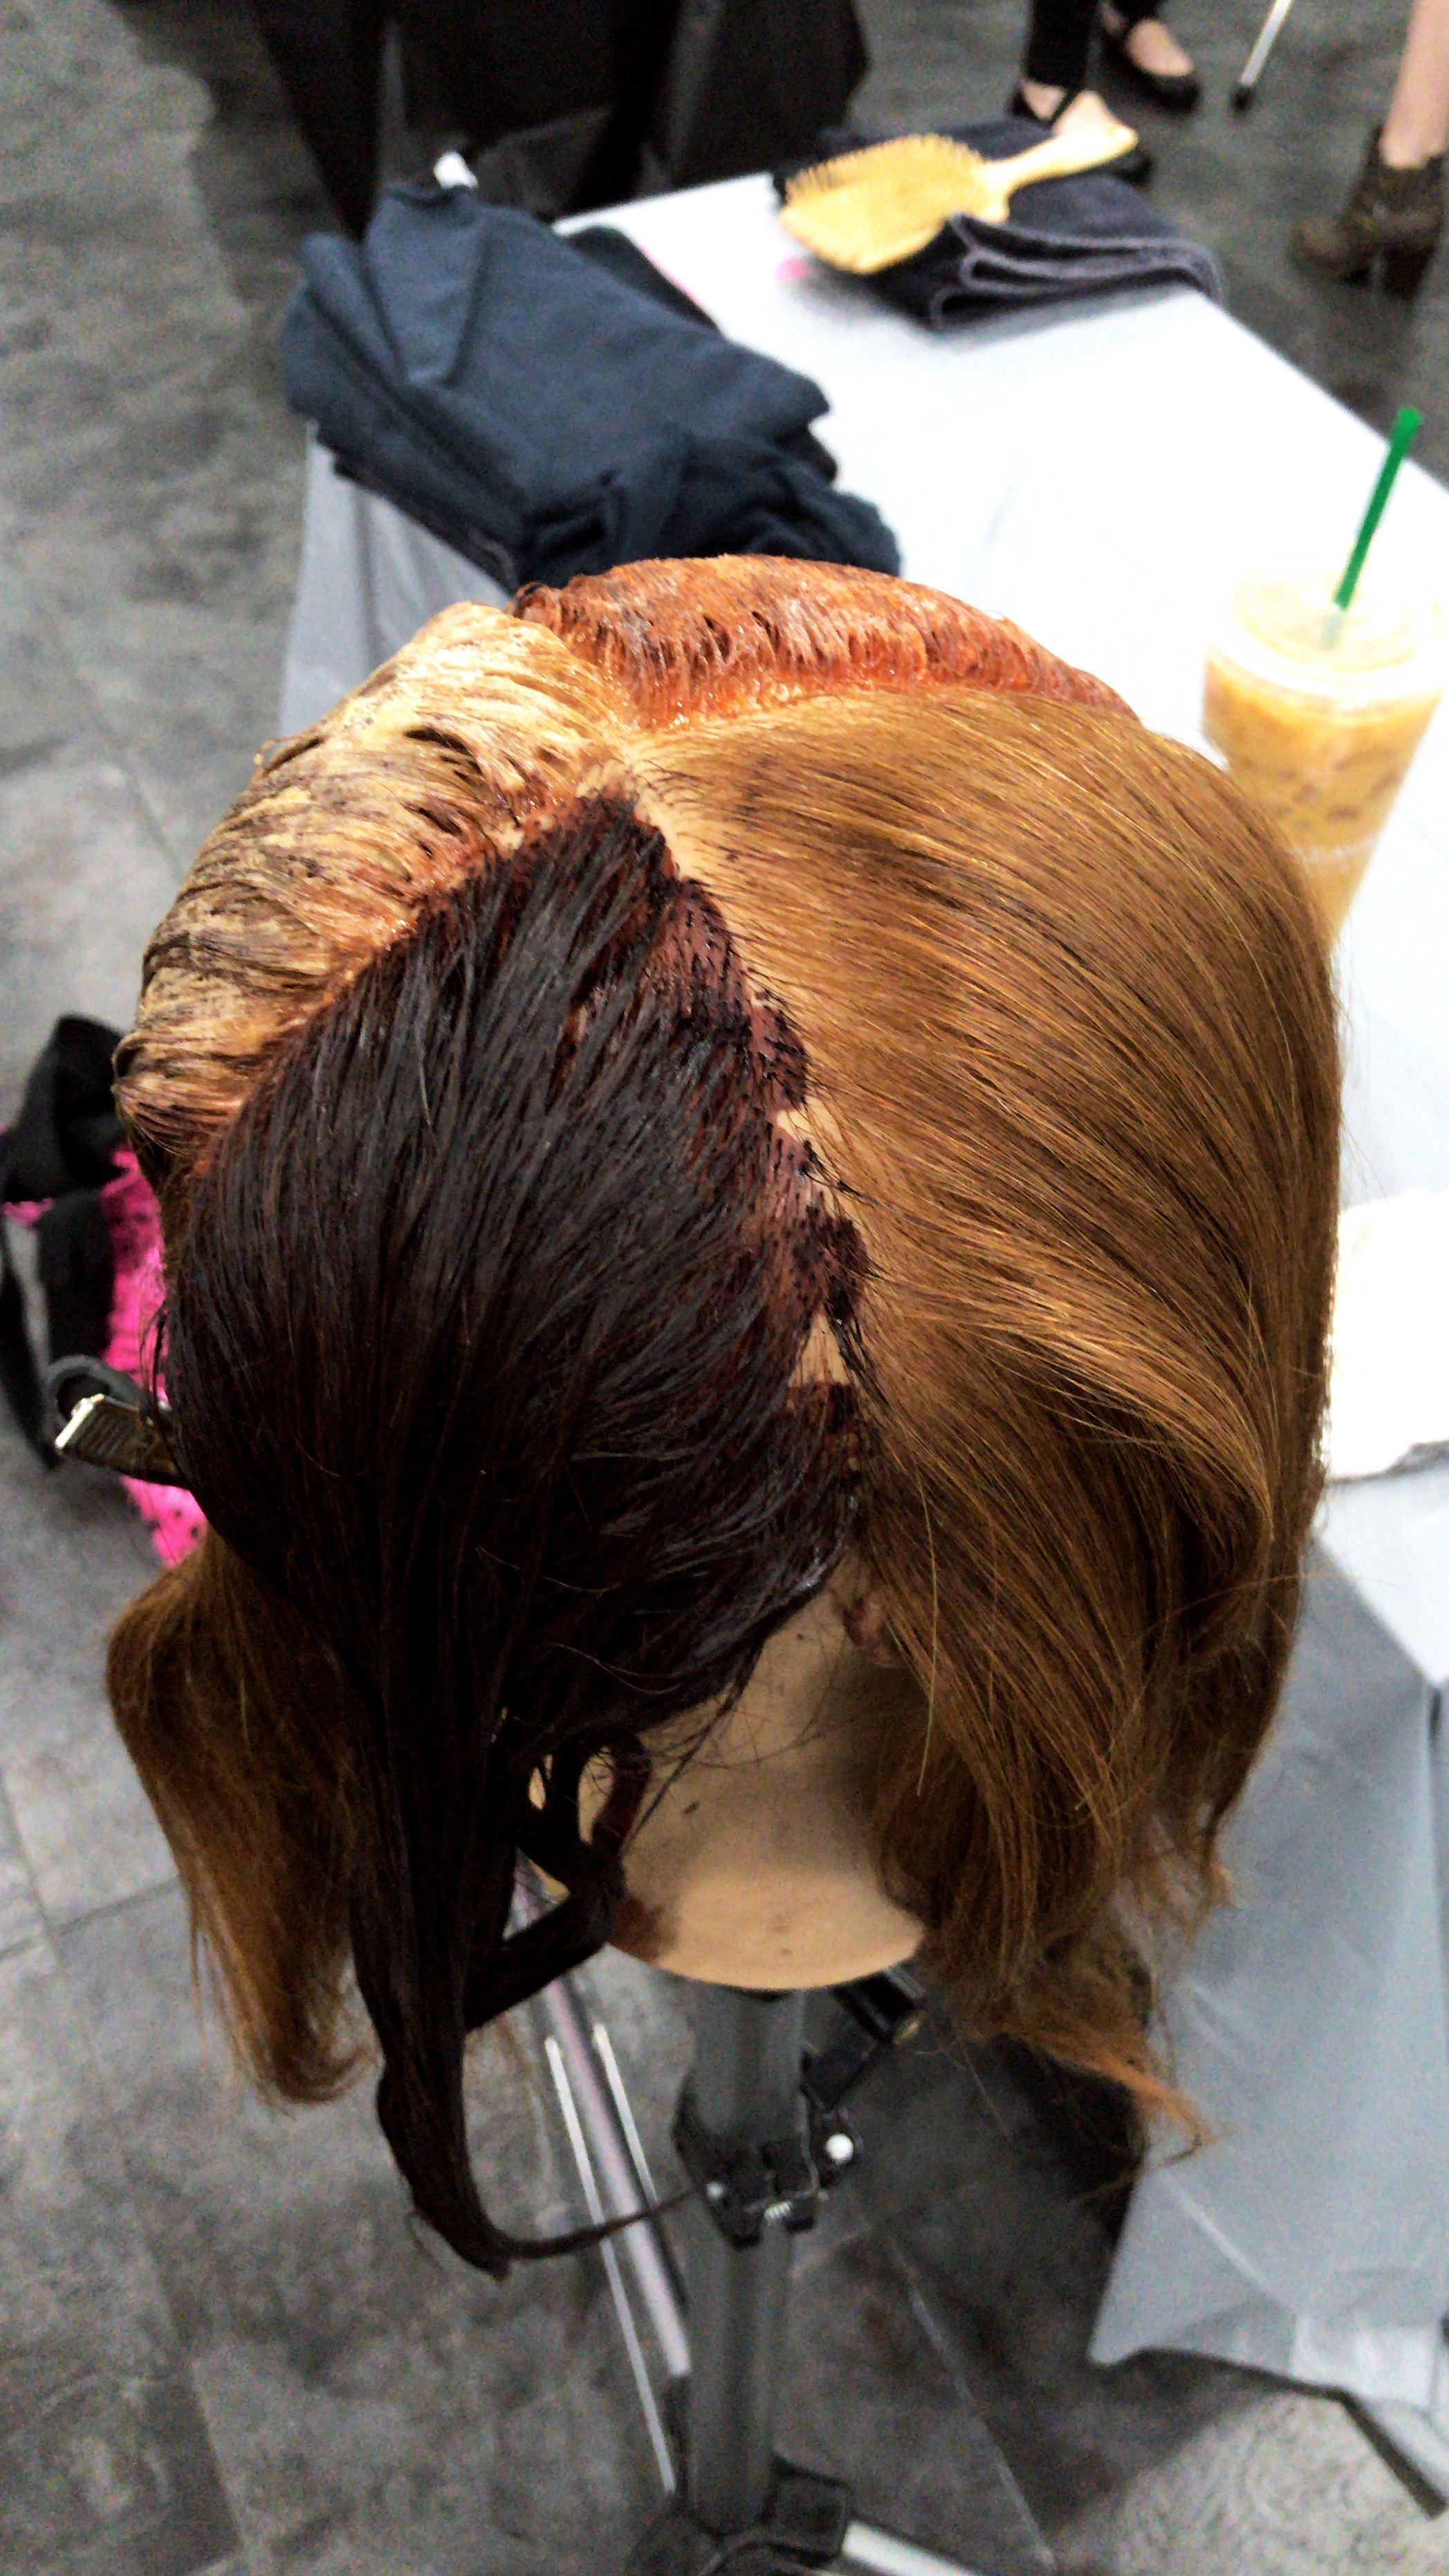 Cutting edge techniques and formulas to bring back to the salon!